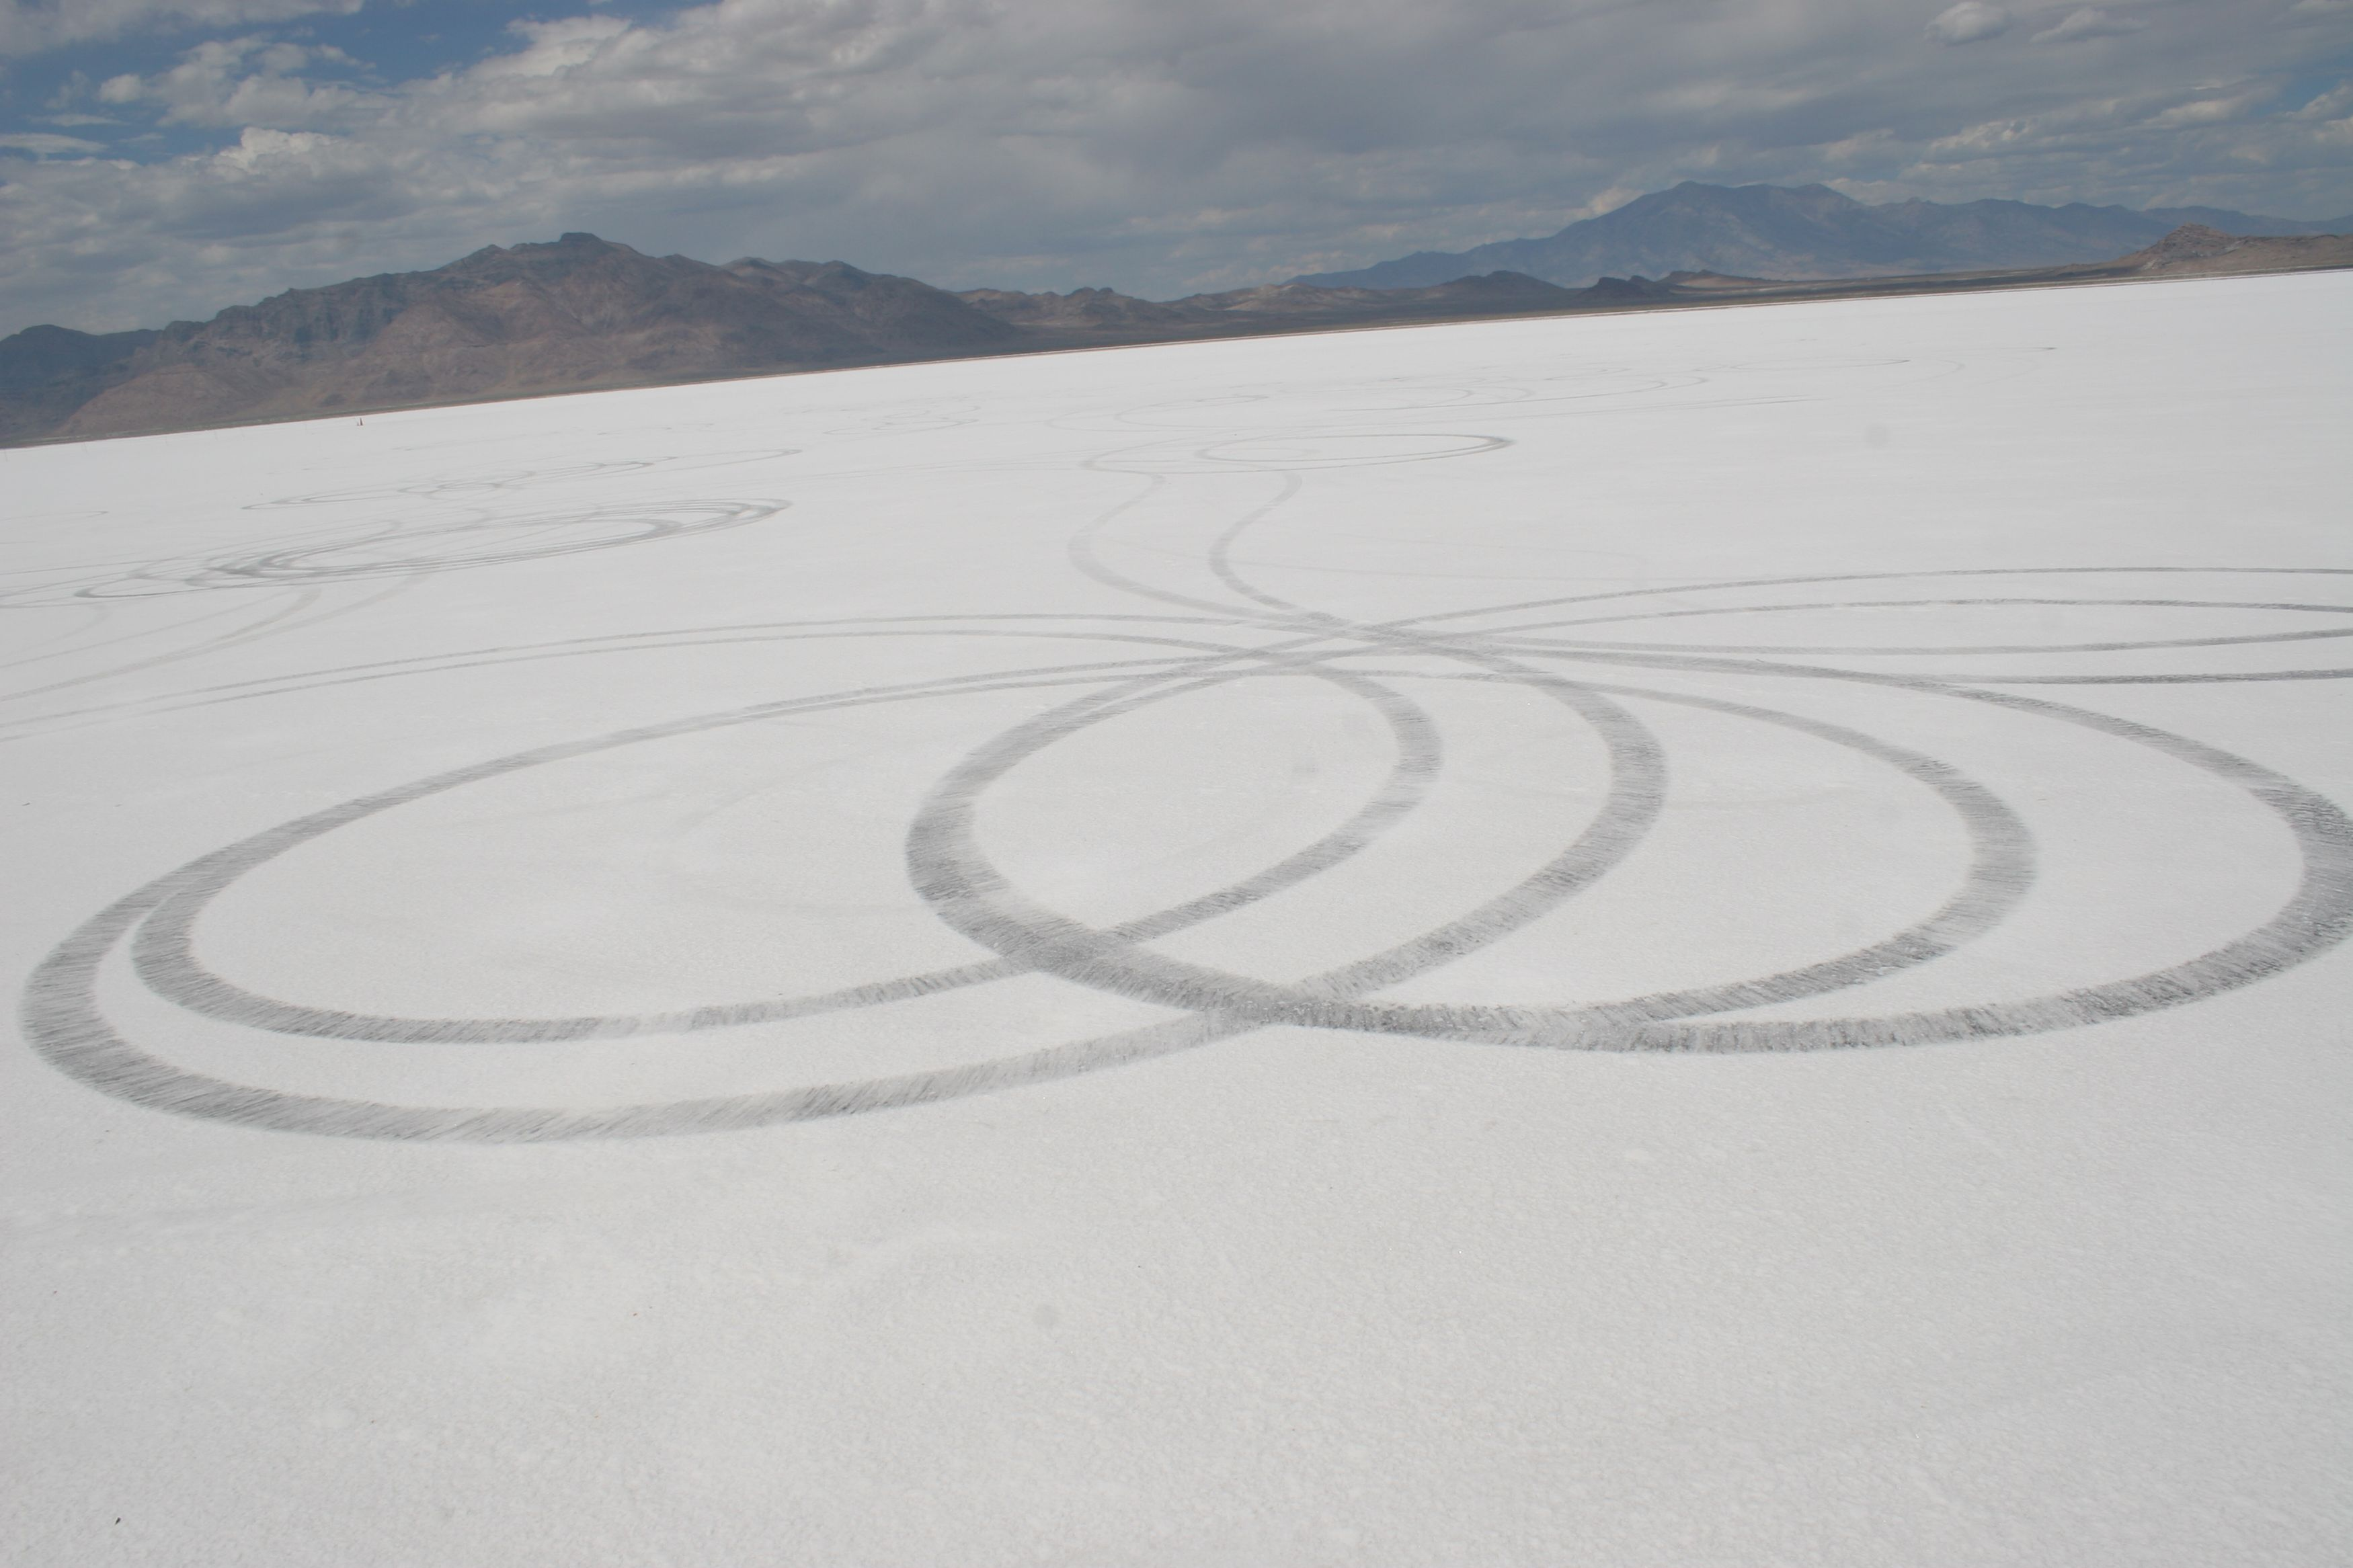 Skidmarks observed at Bonneville in 2006. Photo by the author.